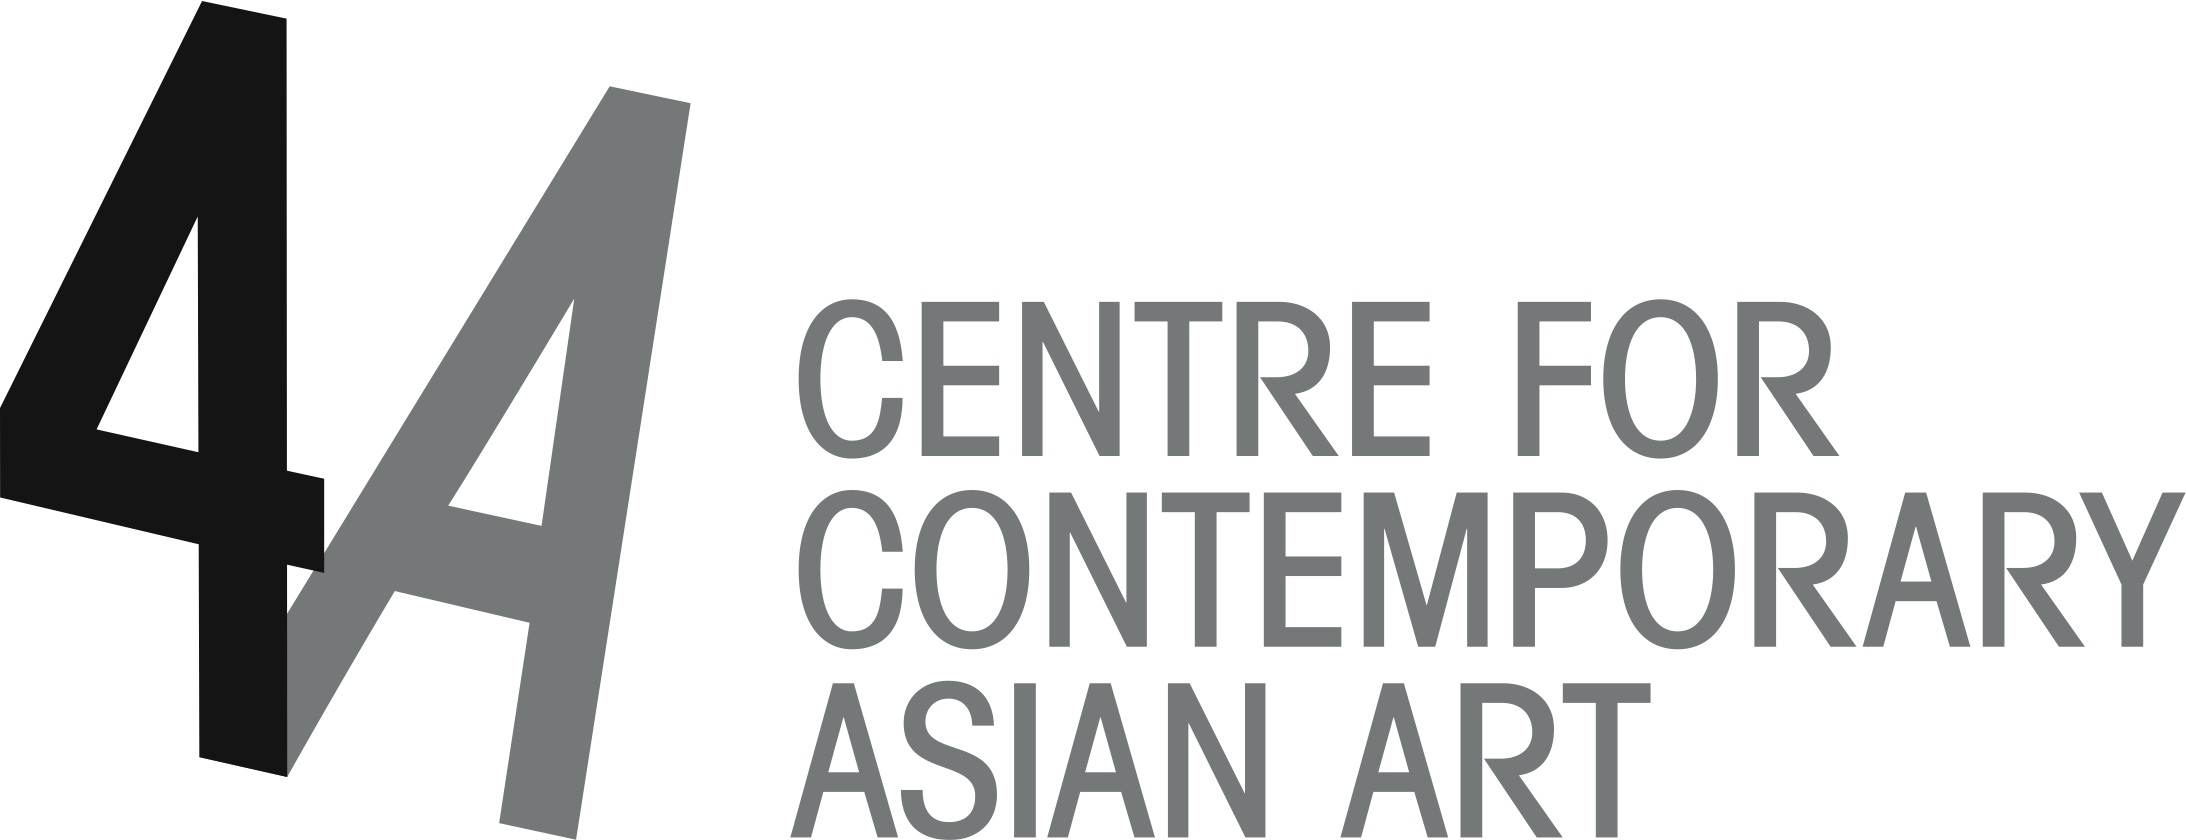 4A Centre for Contemporary Asian Art